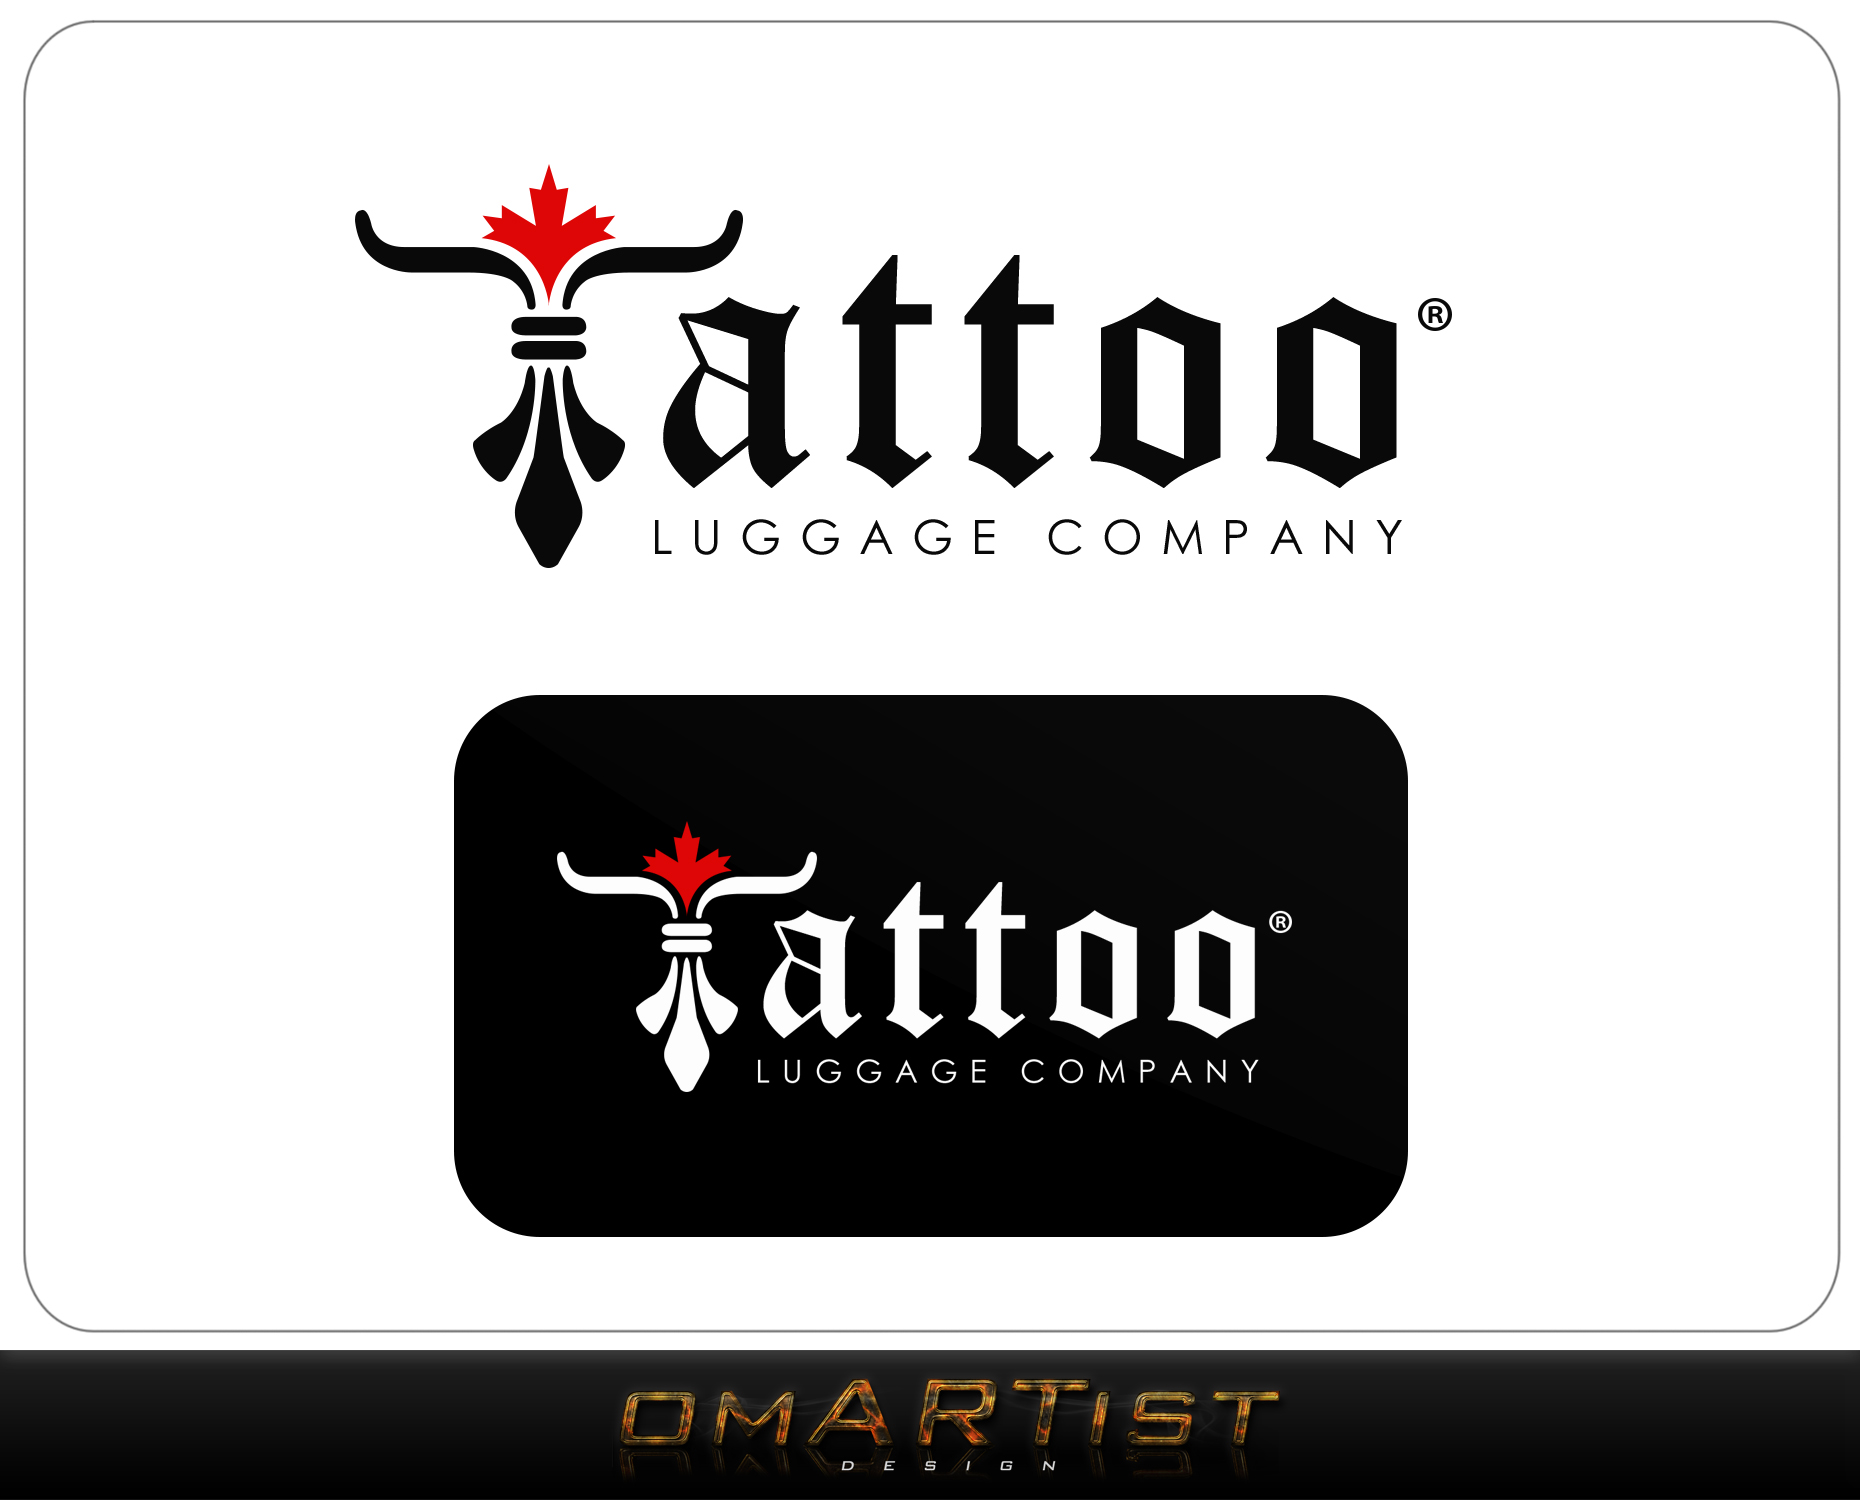 Logo Design by omARTist - Entry No. 56 in the Logo Design Contest Artistic Logo Design for Tattoo Luggage Company.